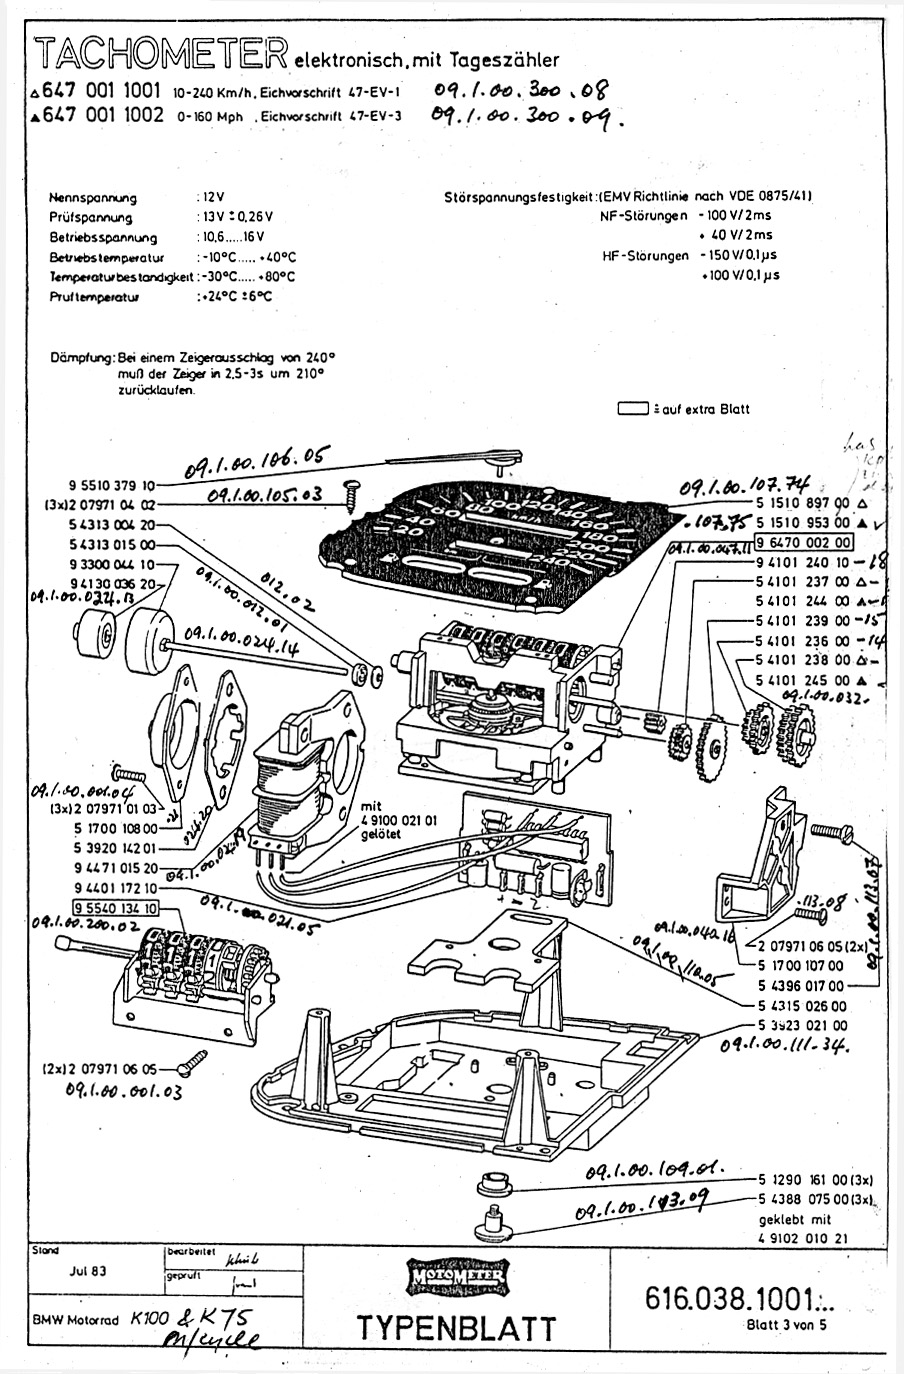 Bmw K100 Motor Schematic Motorcycle Image Ideas 1985 Wiring Diagram The Velobanjogent K100bmw Motometer Instruments German